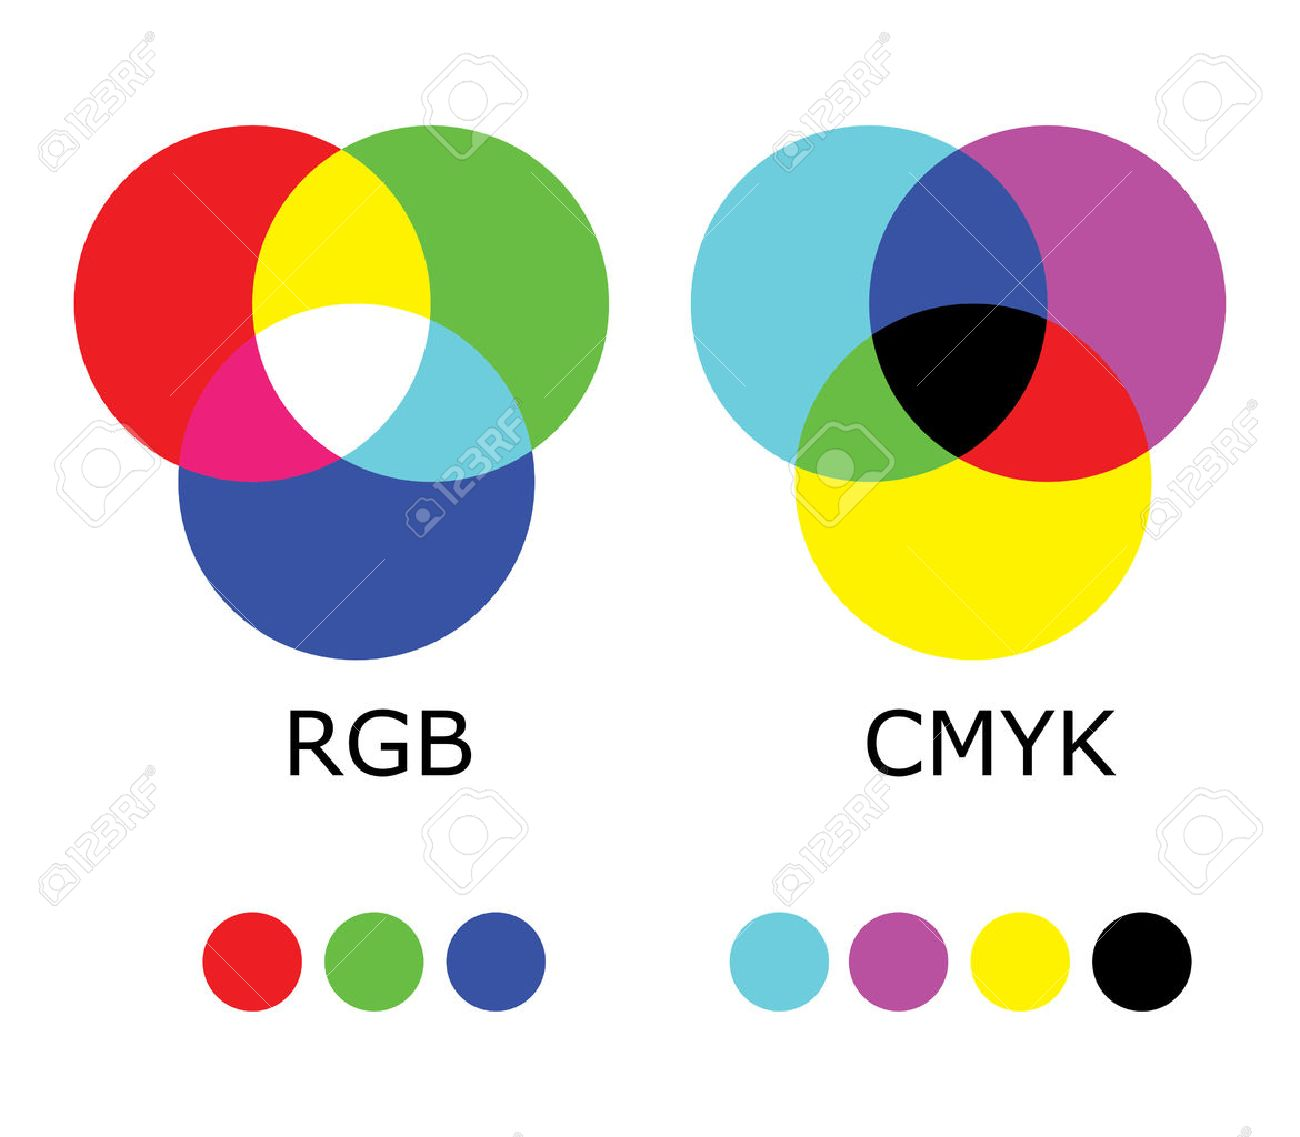 Rgb and cmyk color diagram royalty free cliparts vectors and stock rgb and cmyk color diagram stock vector 64102476 geenschuldenfo Image collections